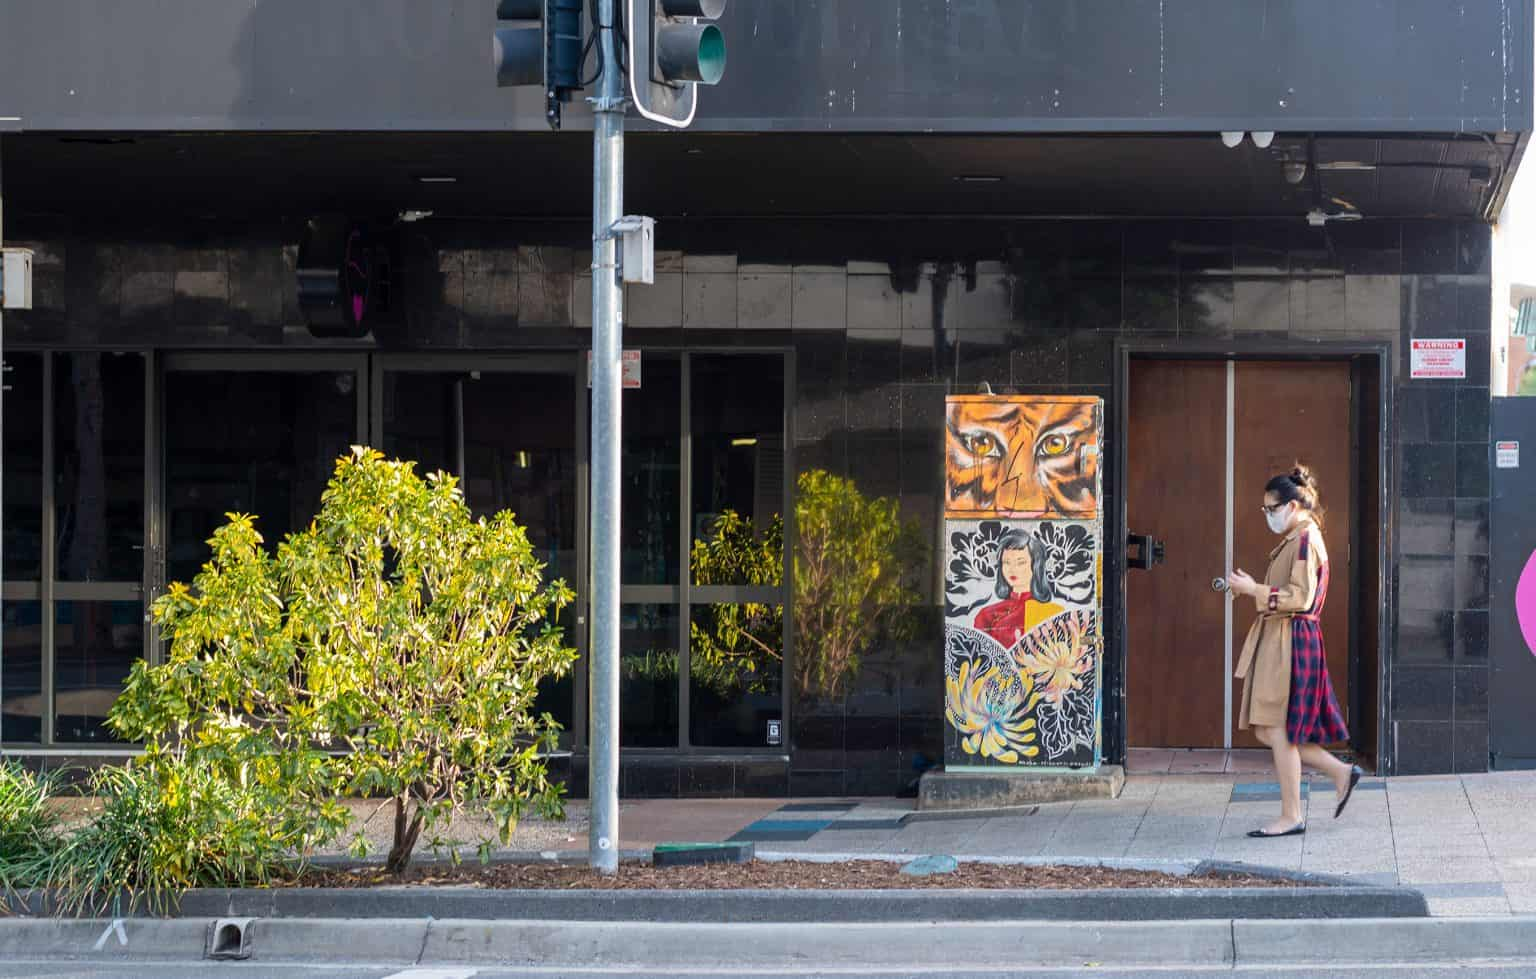 greater brisbane lockdown due to covid